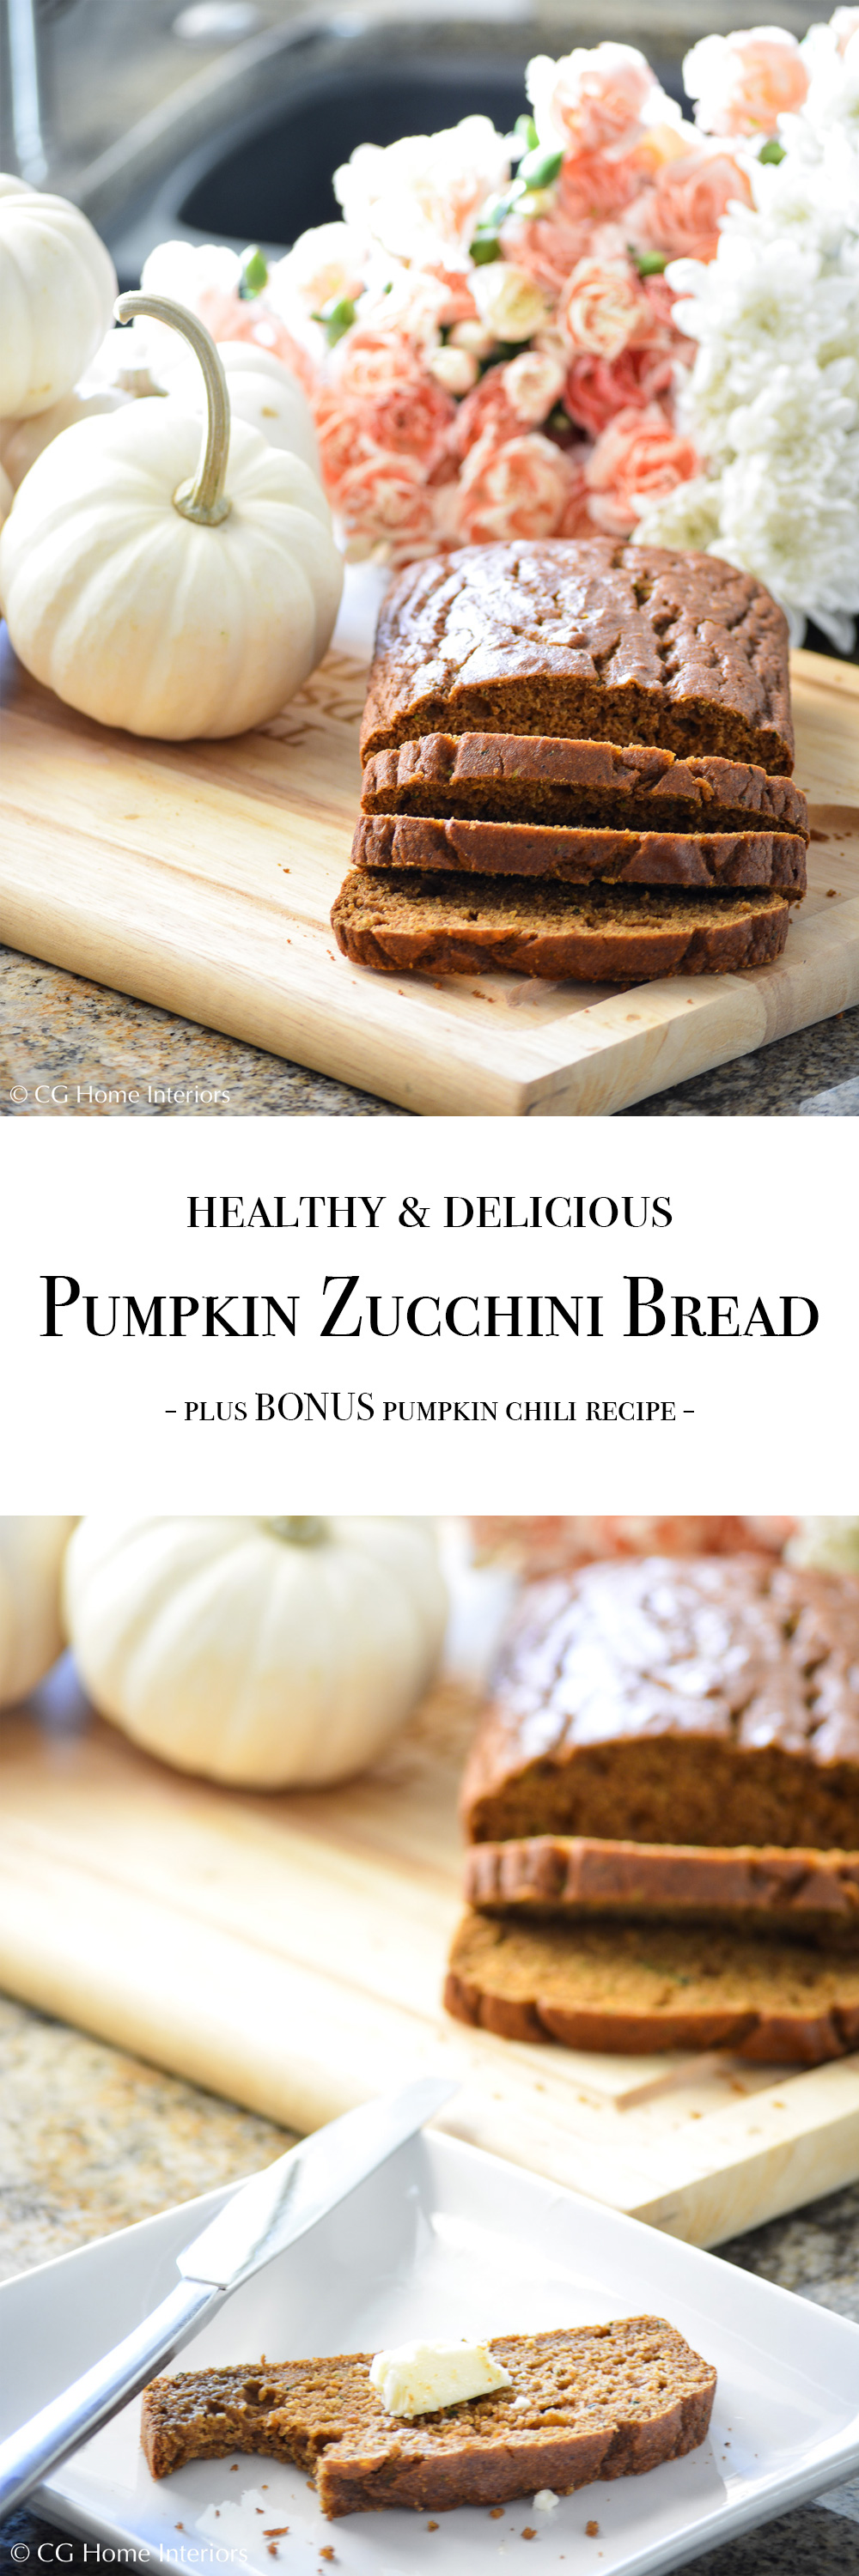 Healthy Pumpkin Zucchini Bread Pinterest Image